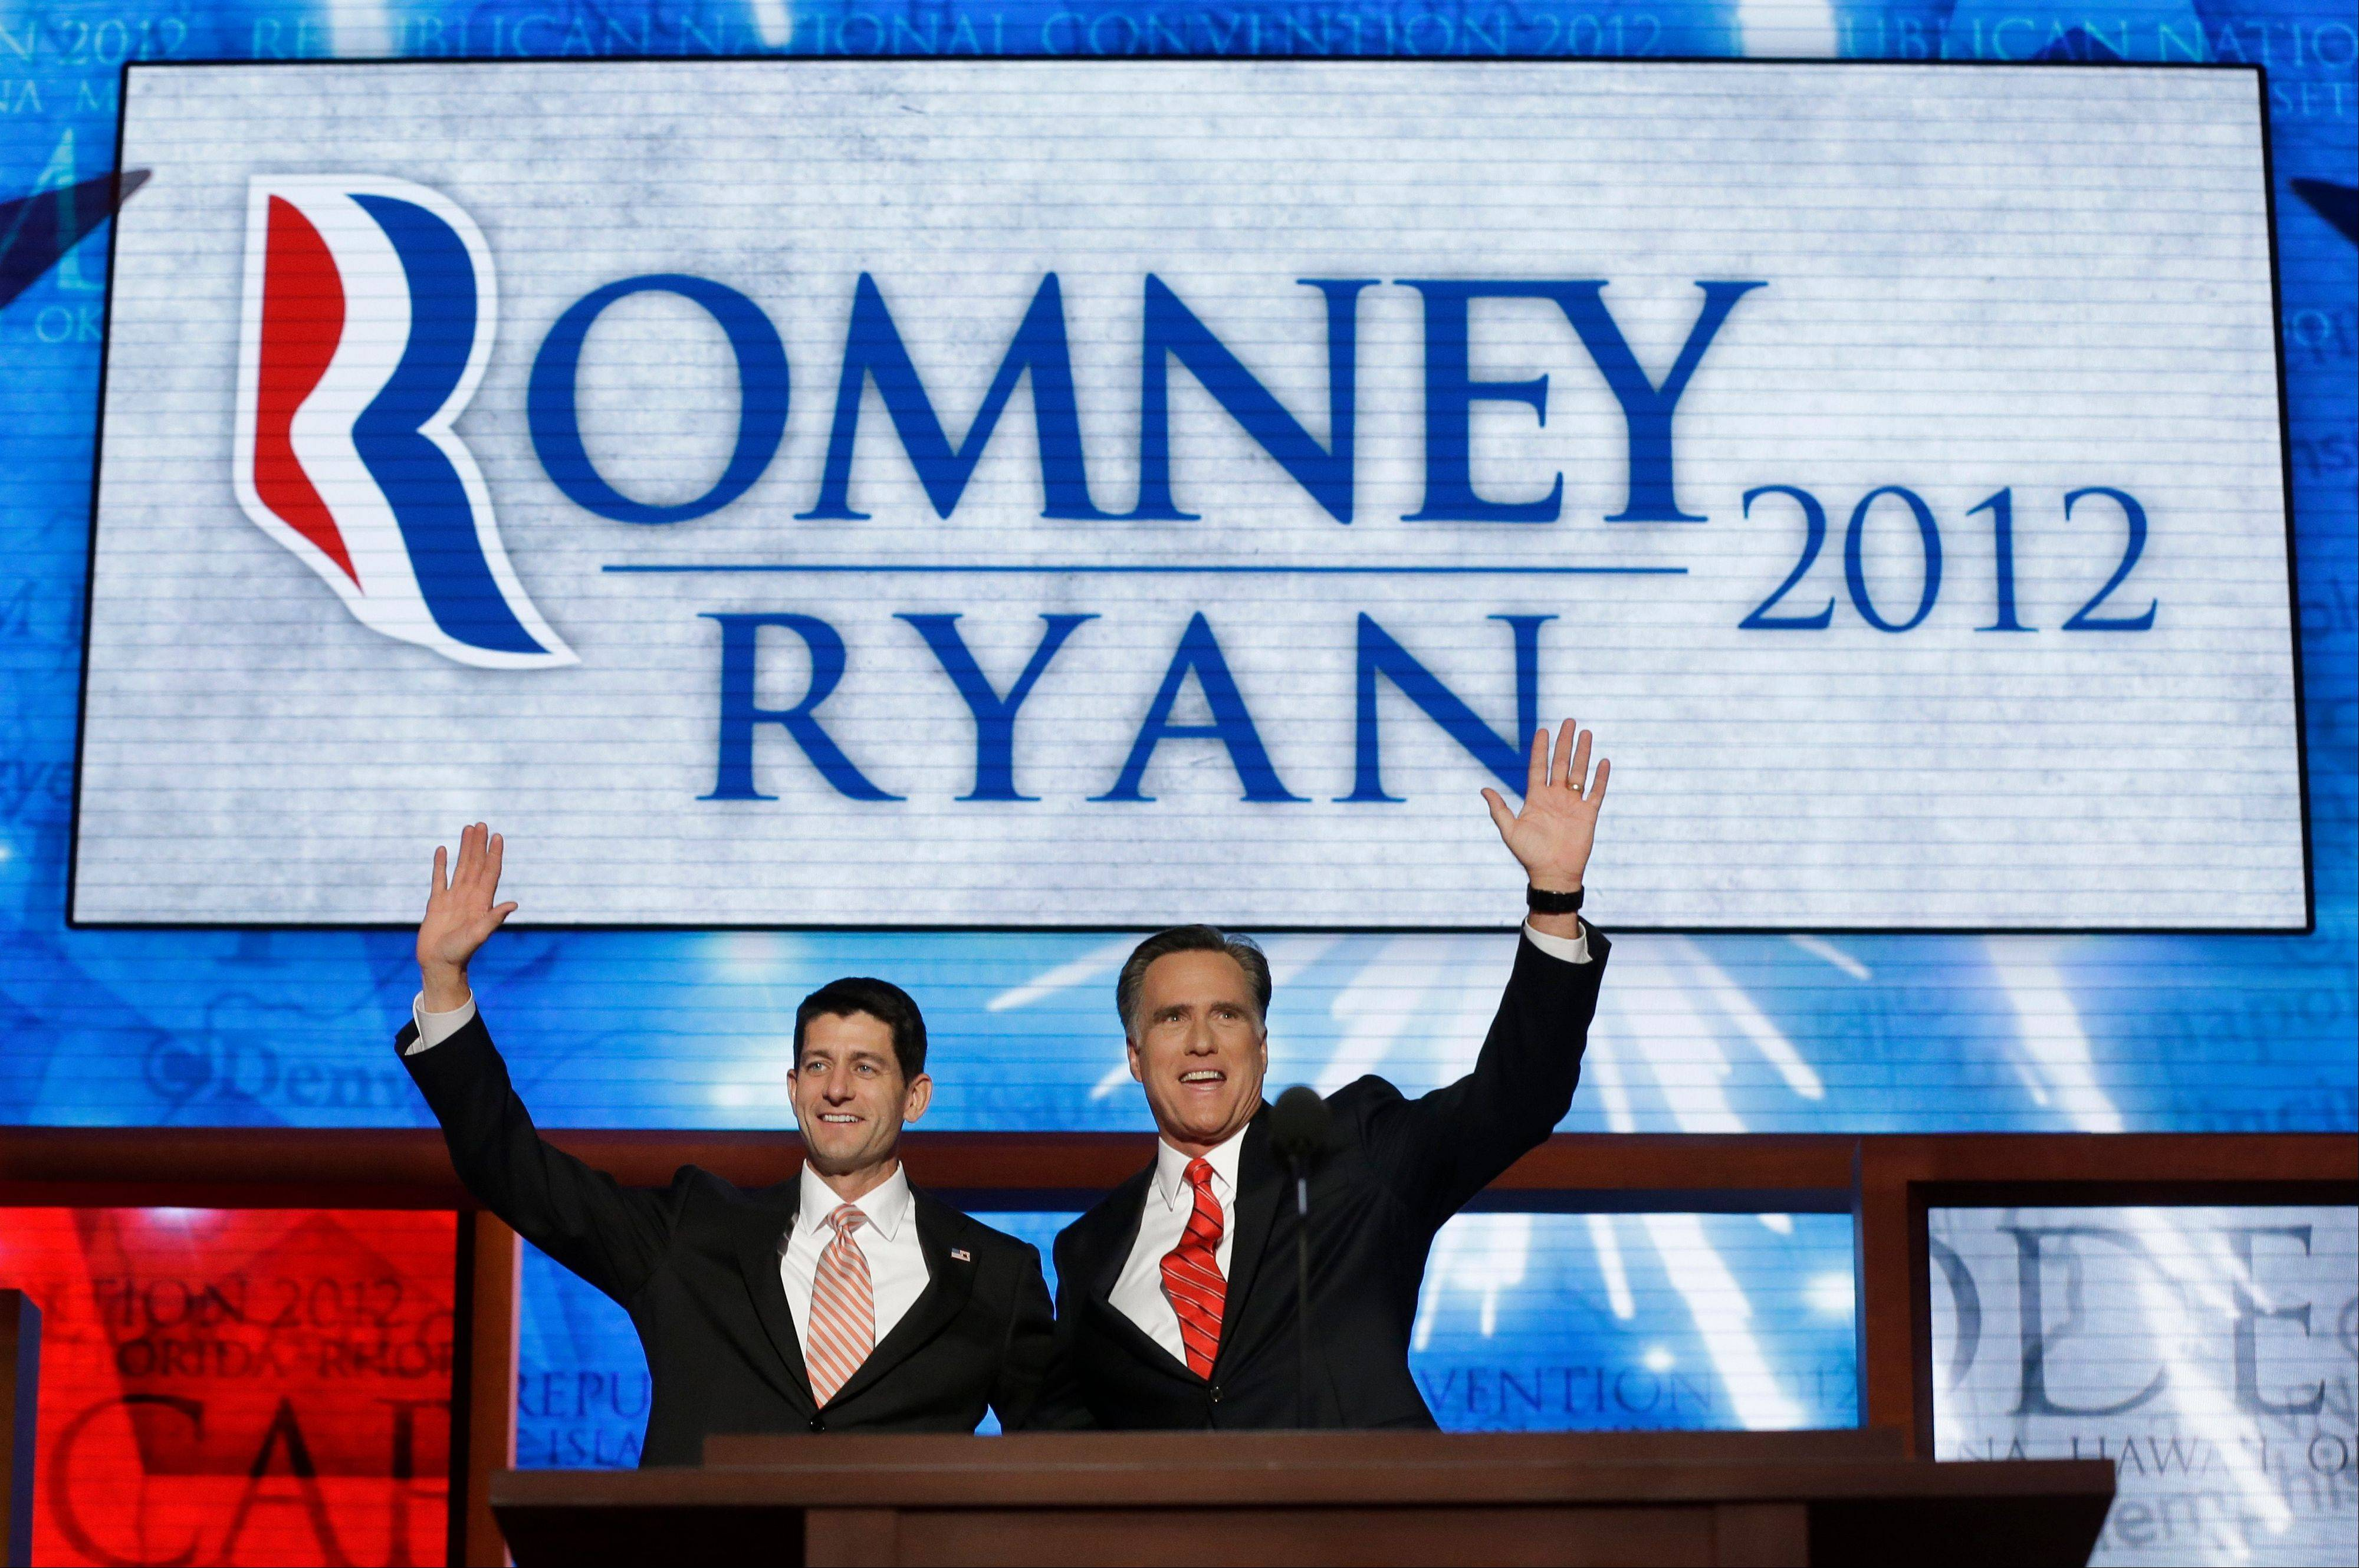 Republican presidential nominee Mitt Romney joined Thursday by Republican vice presidential nominee, Rep. Paul Ryan, waves to delegates. Fo